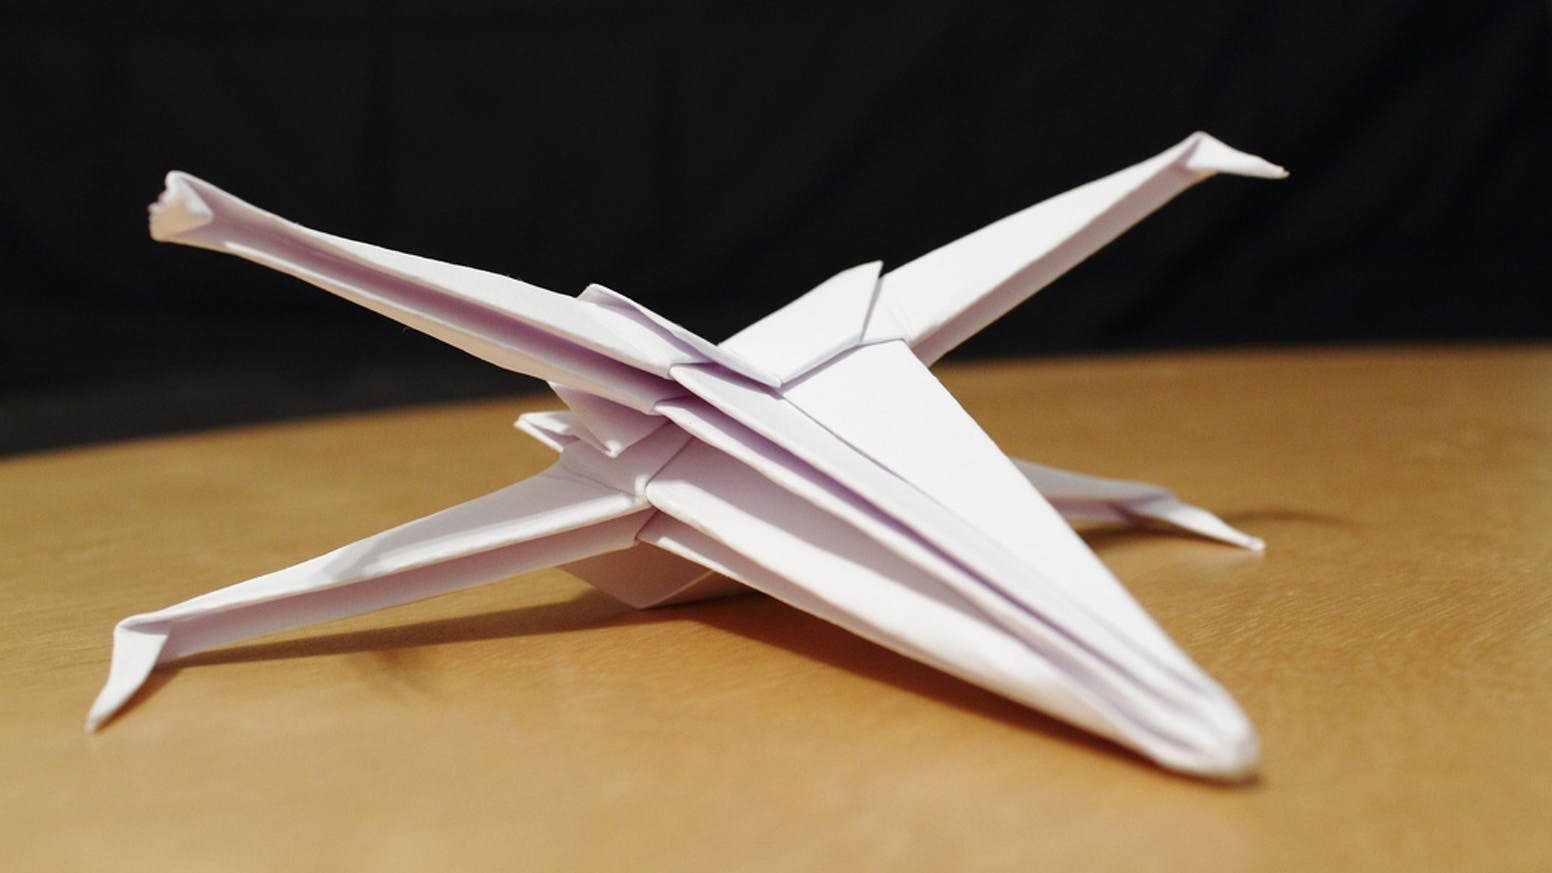 Paper plane heaven by yenthe heyvaert kickstarter have you always dreamed about a paper x wing double decker or an f 16 that could actually fly its your lucky day jeuxipadfo Images